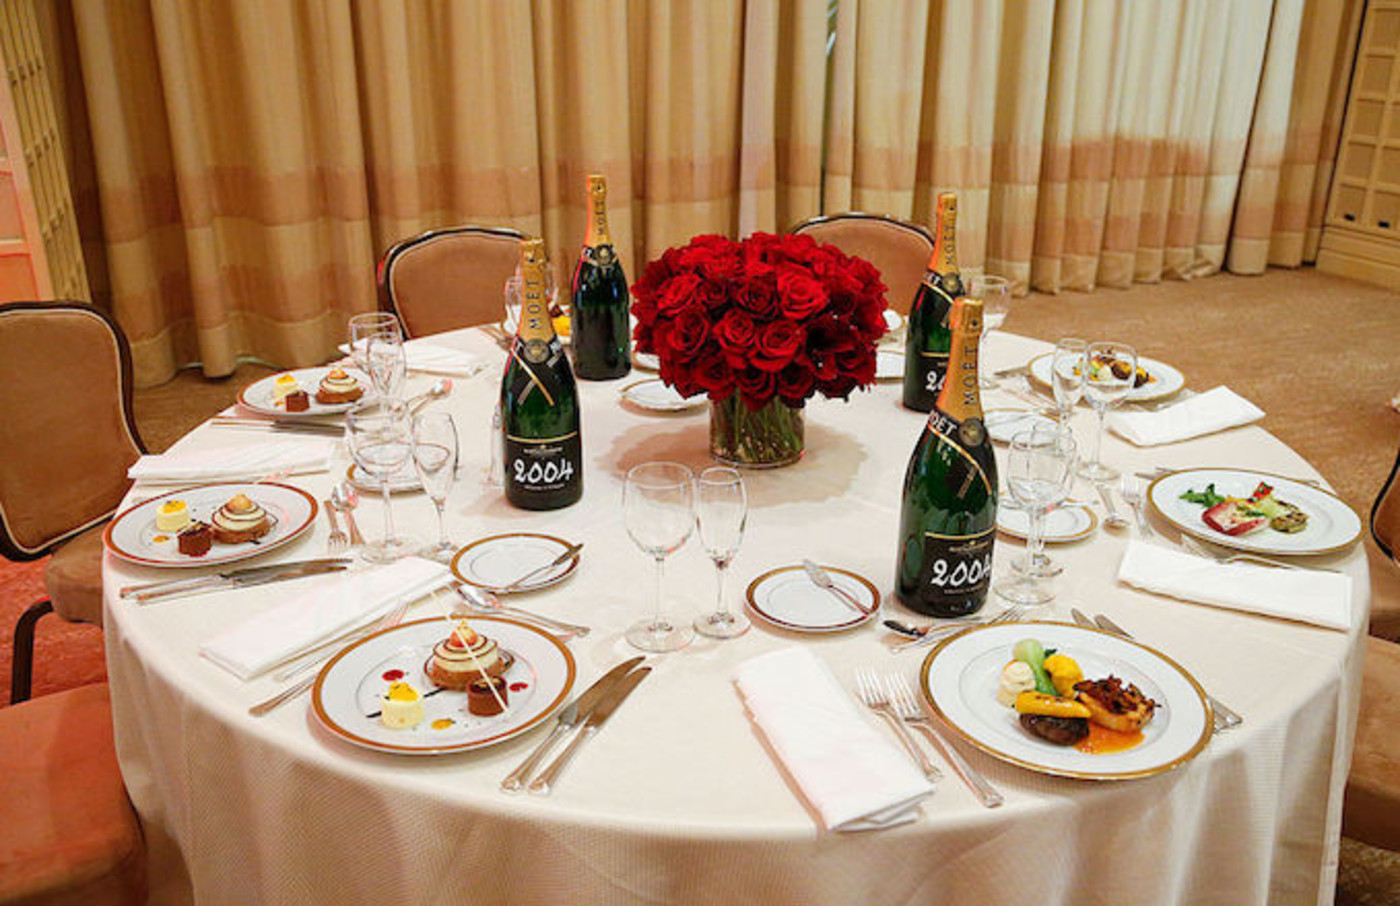 An overall view of table setting